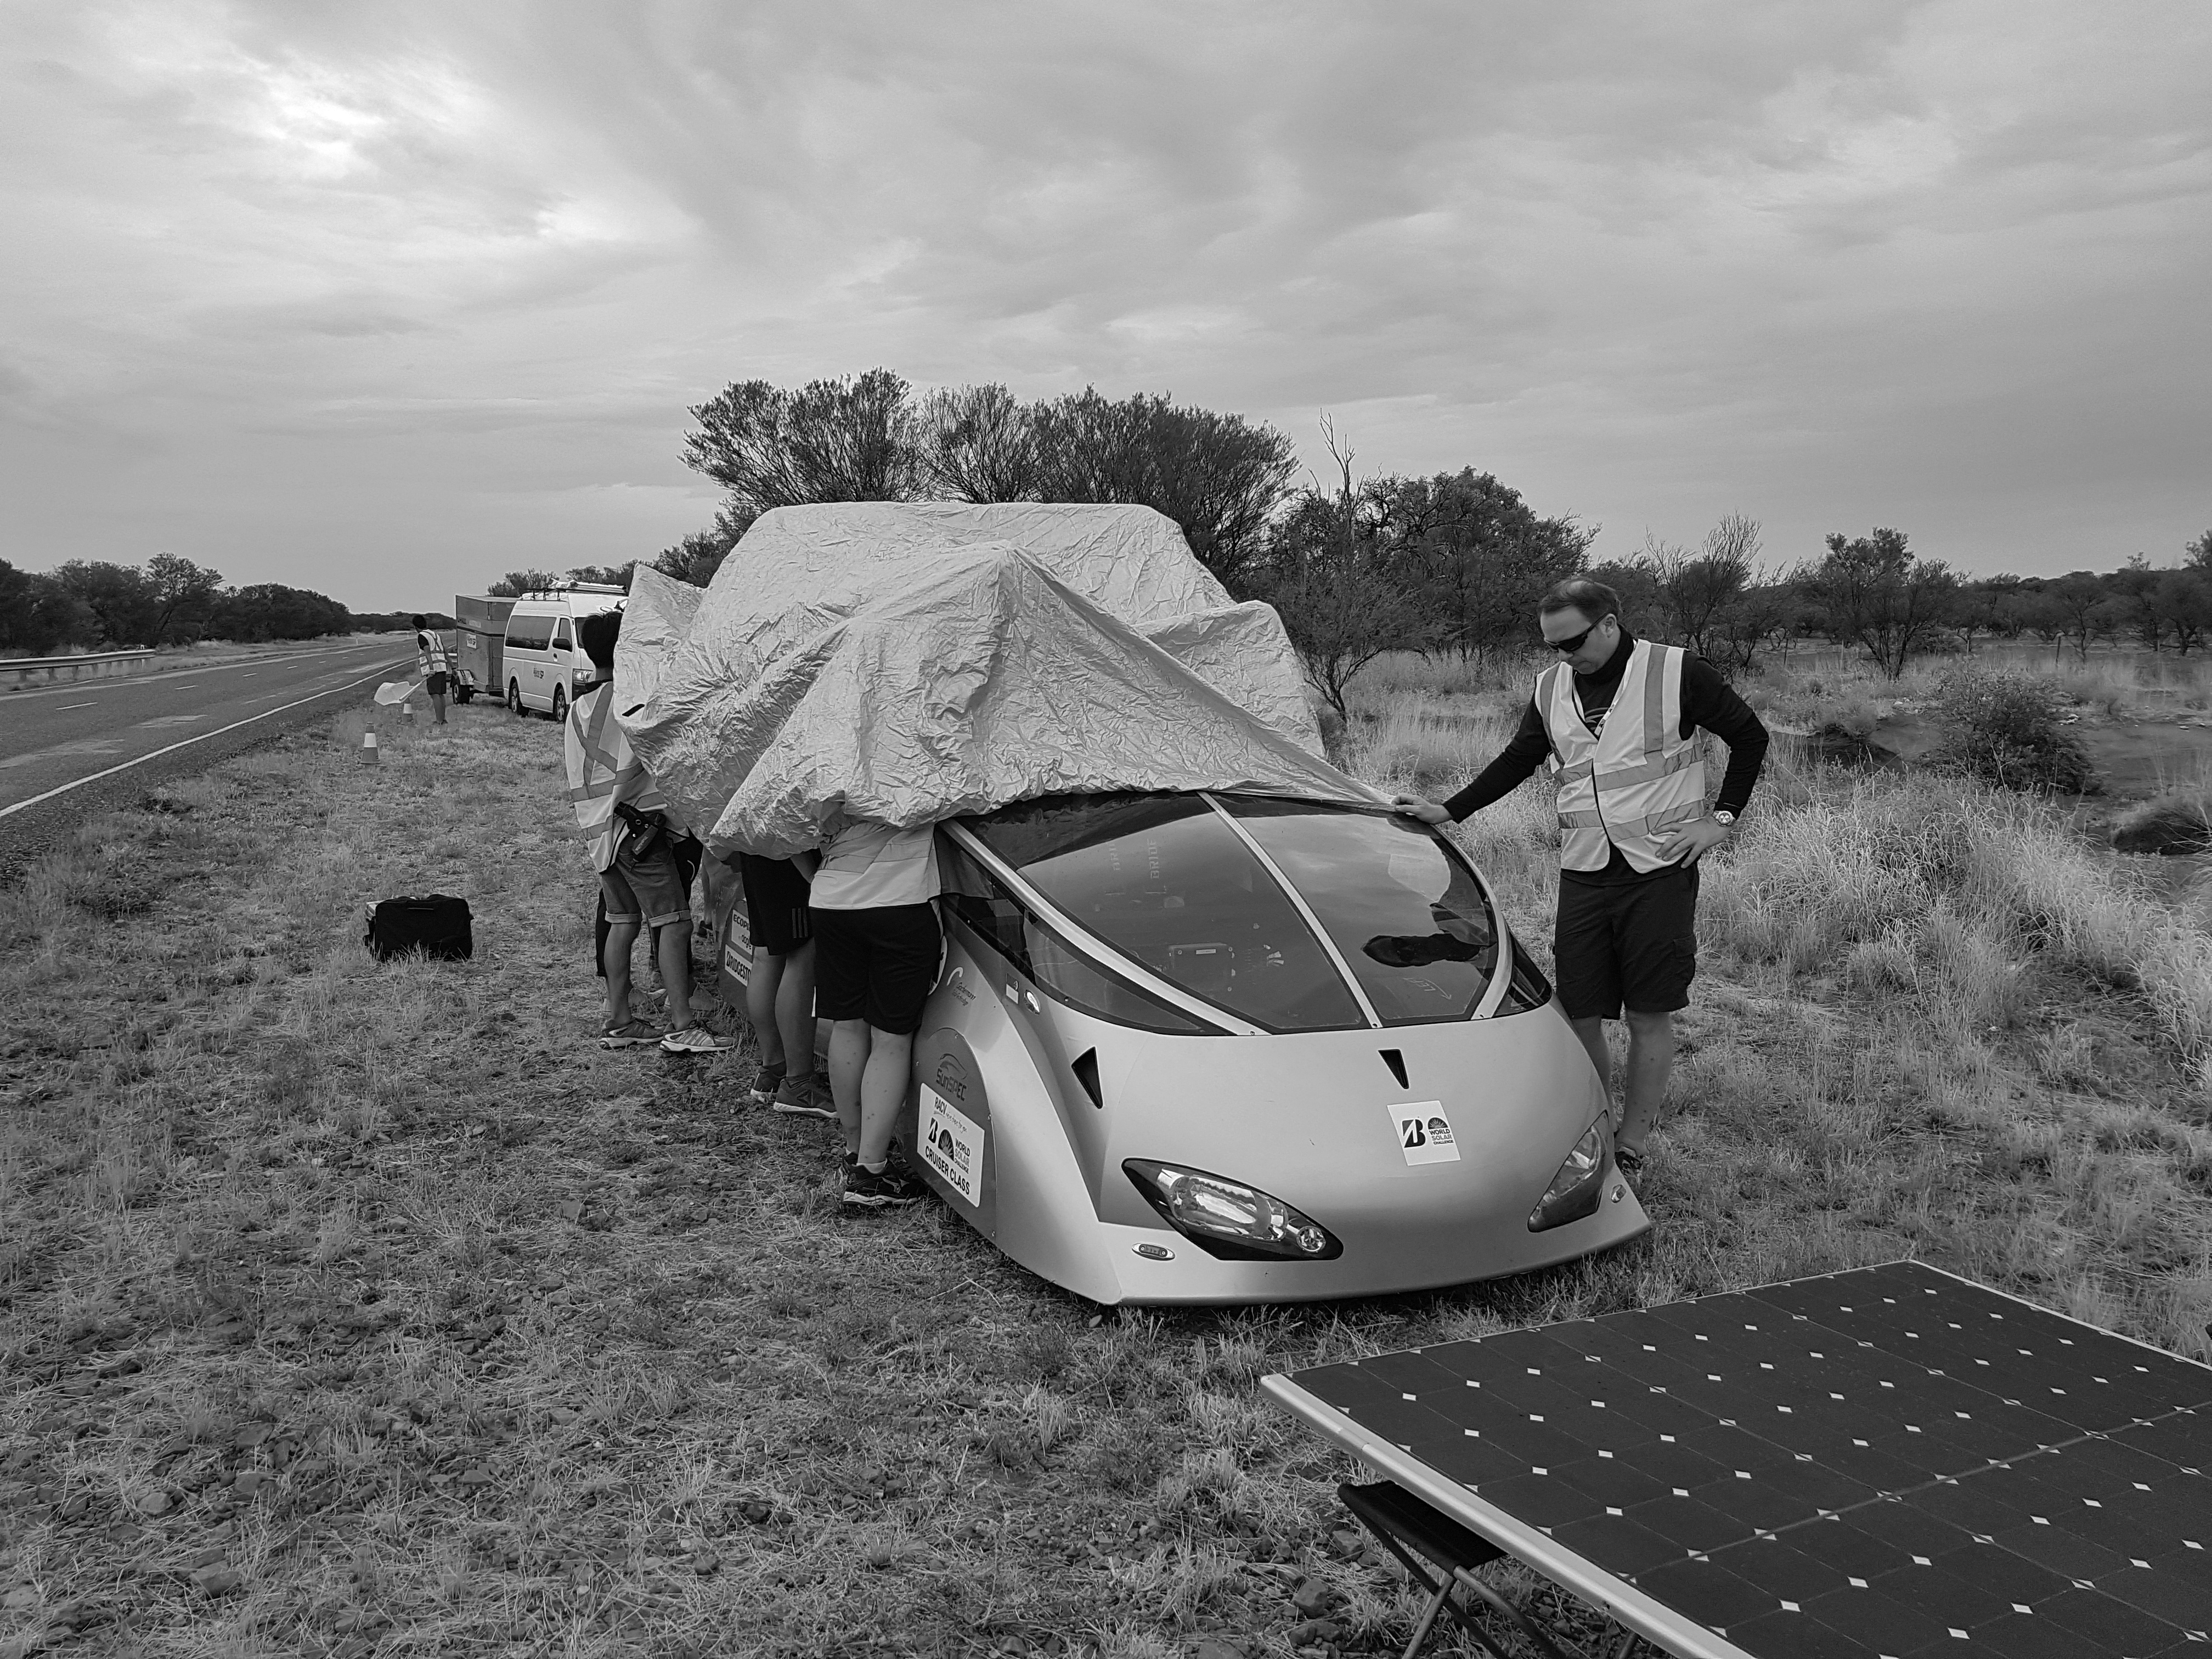 The SunSPEC5 unveiled at the 2017 World Solar Challenge